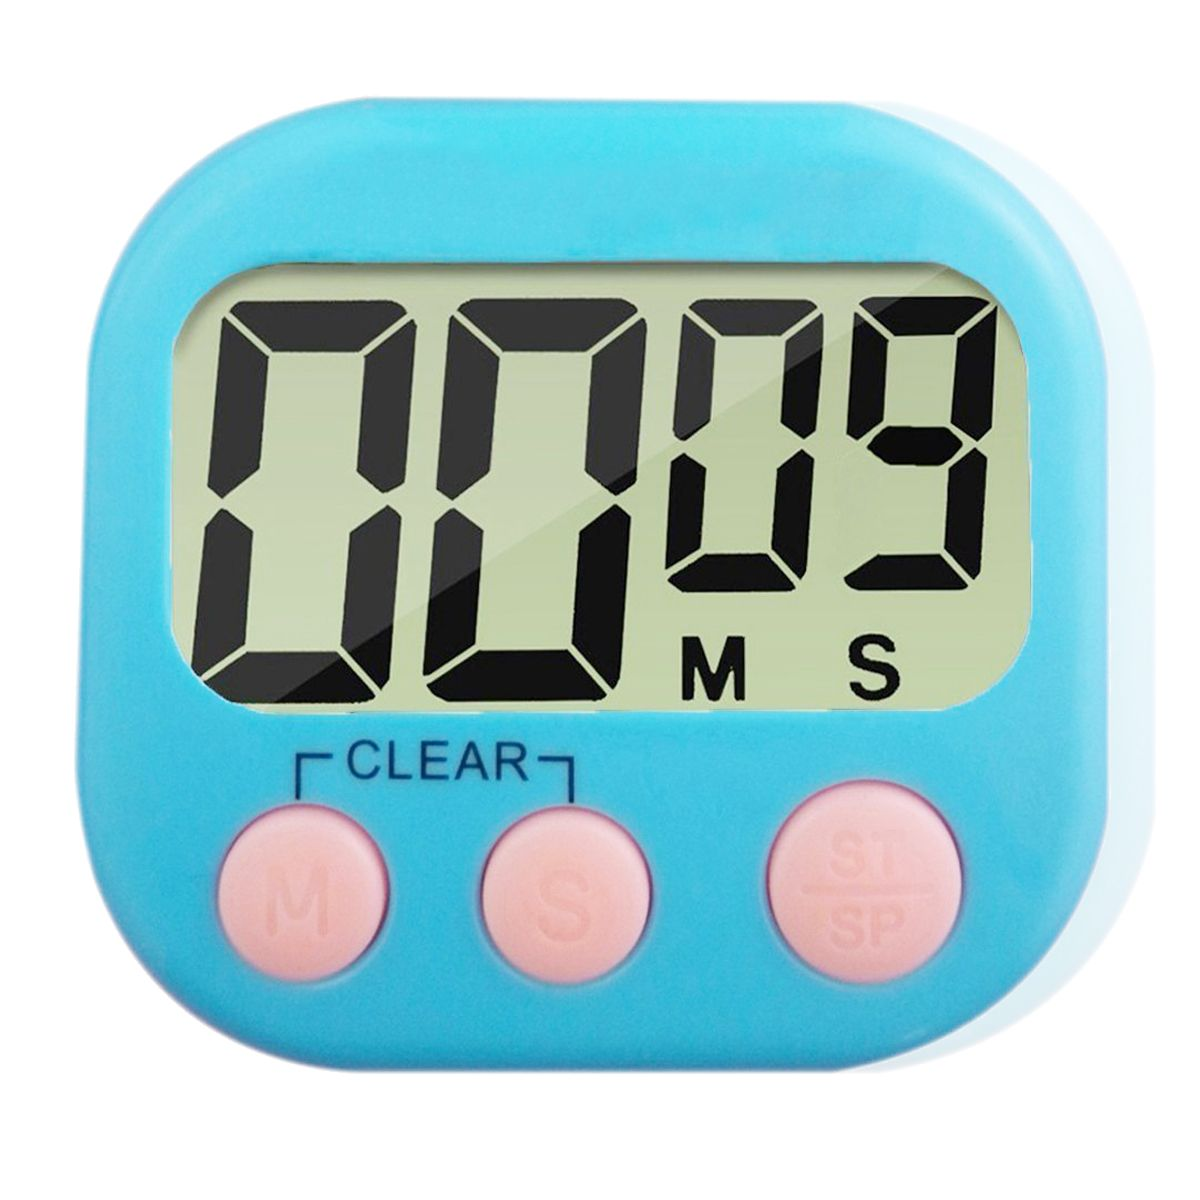 Digital kitchen timers LCD stopwatch Reminder Alarm Cooking alarm ...